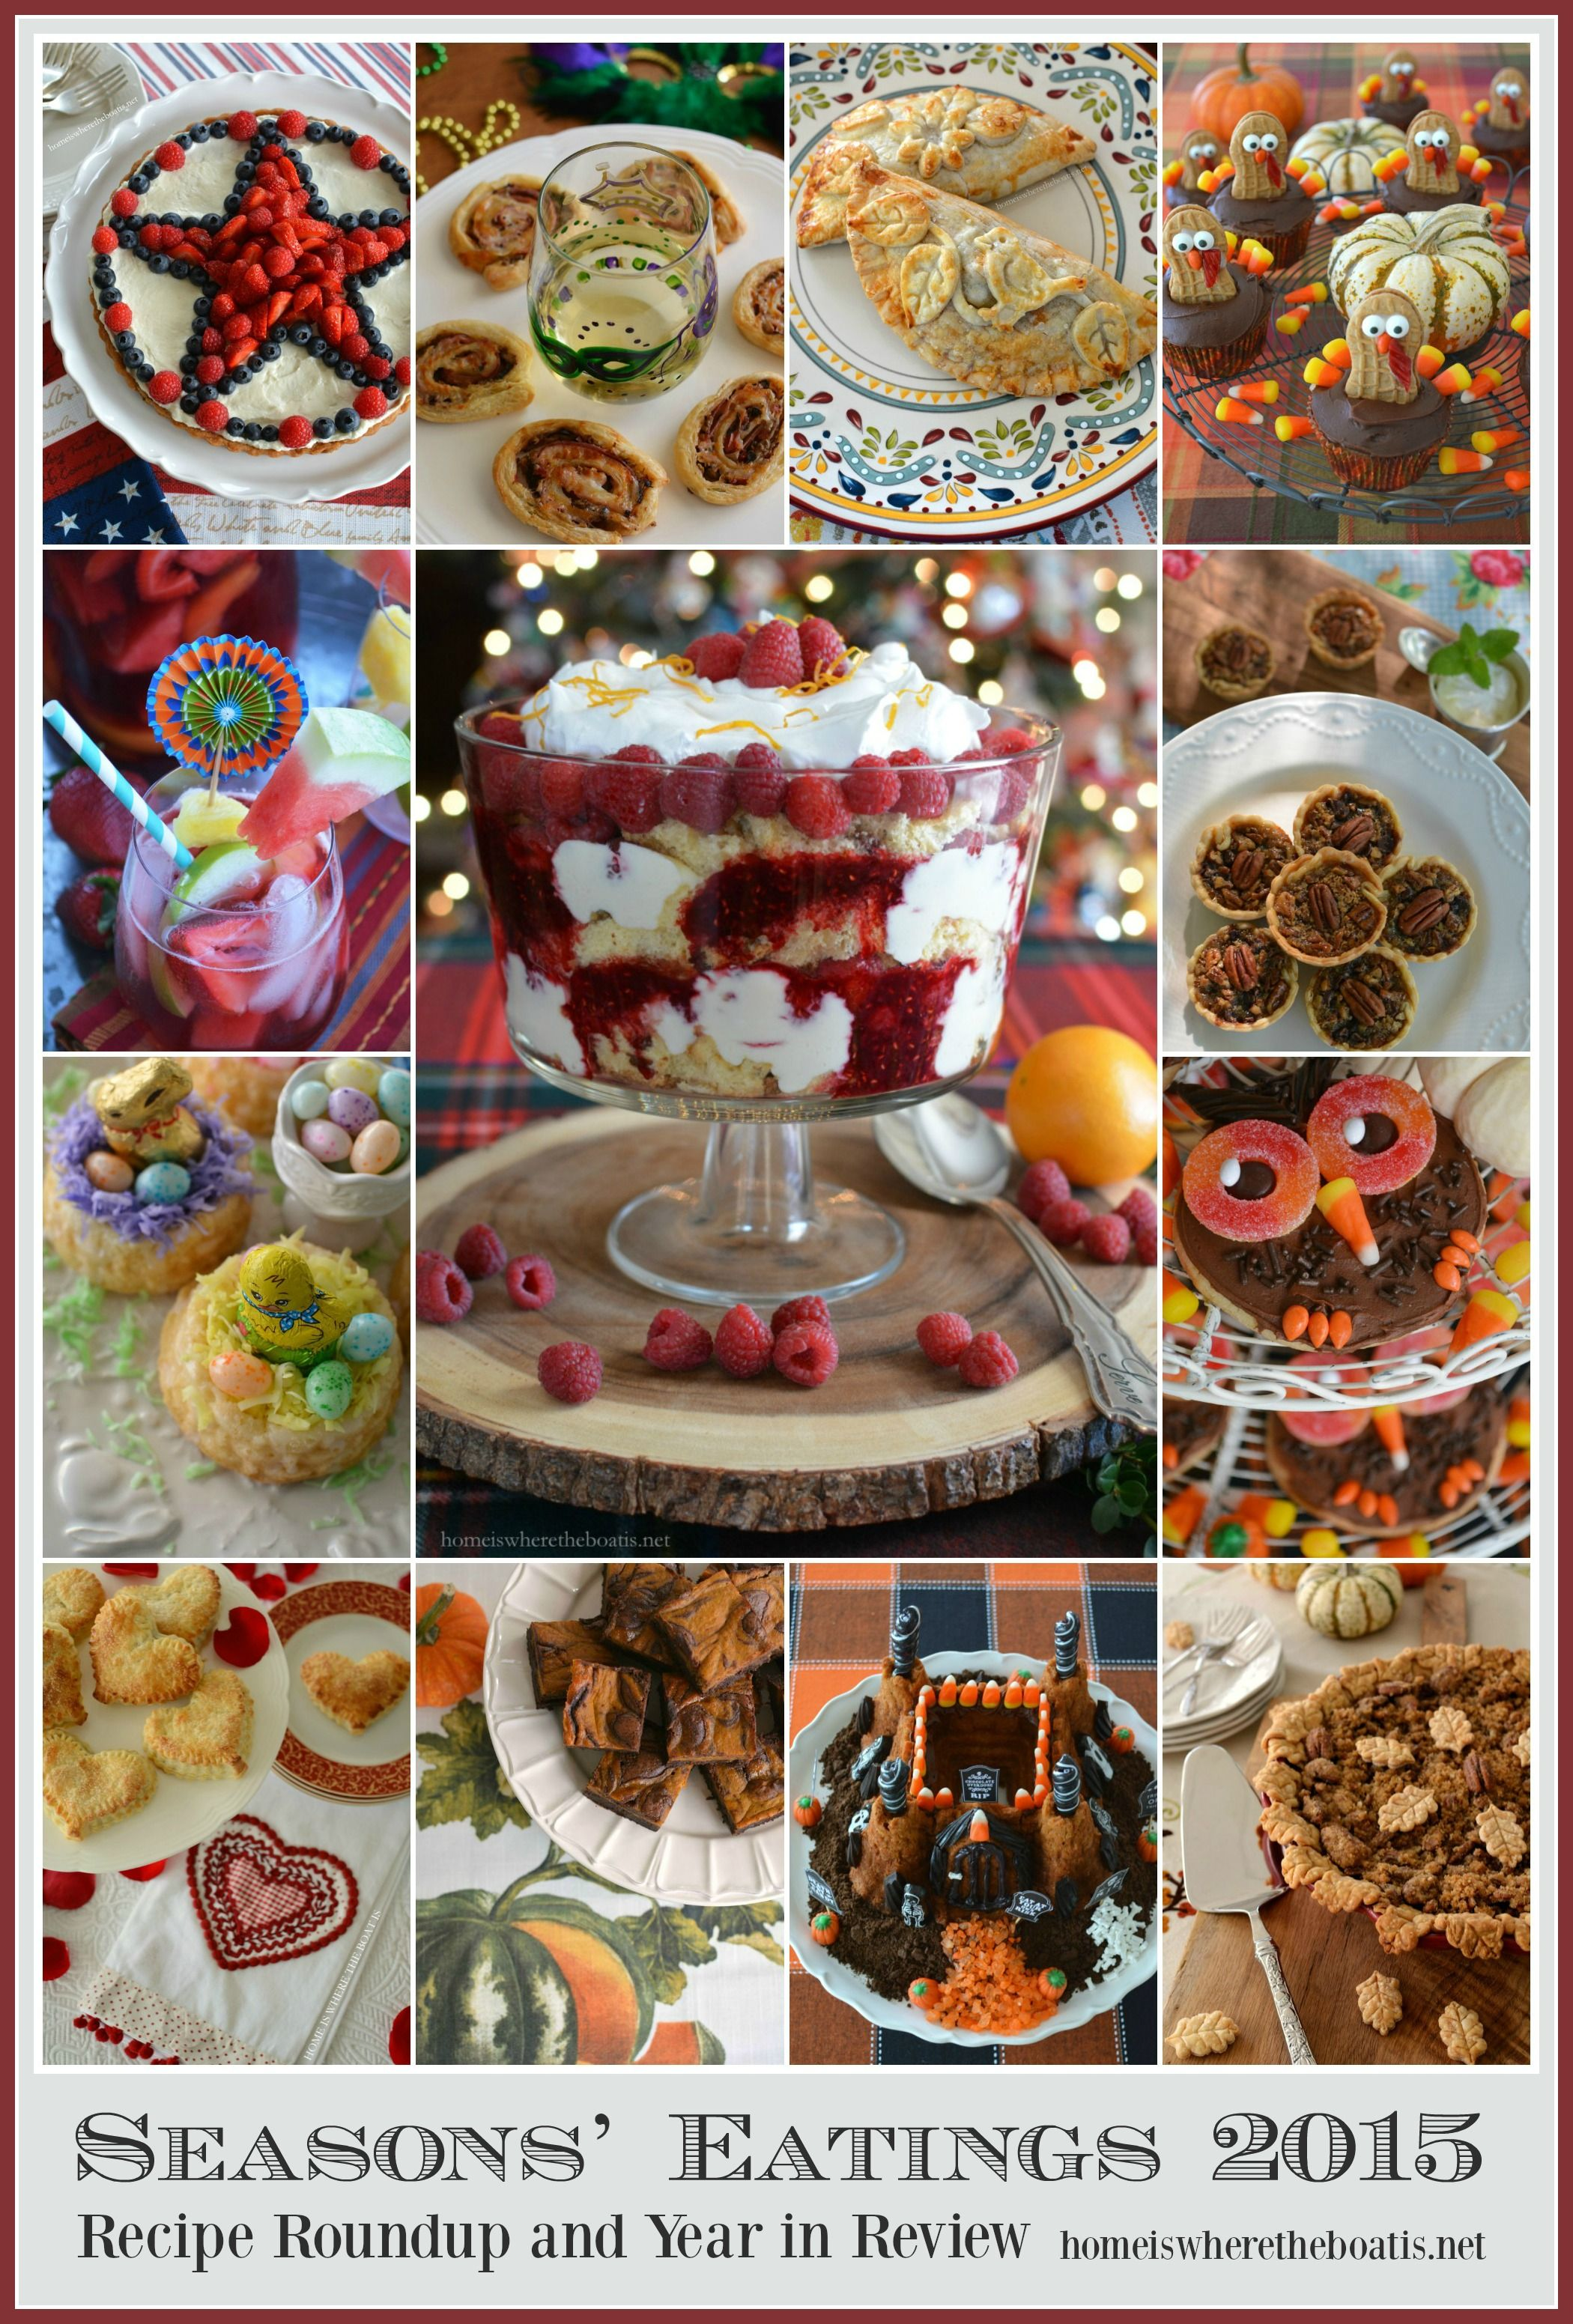 Season's Eatings 2015: Roundup and year in review with recipes for the seasons and holidays   homeiswheretheboatis.net